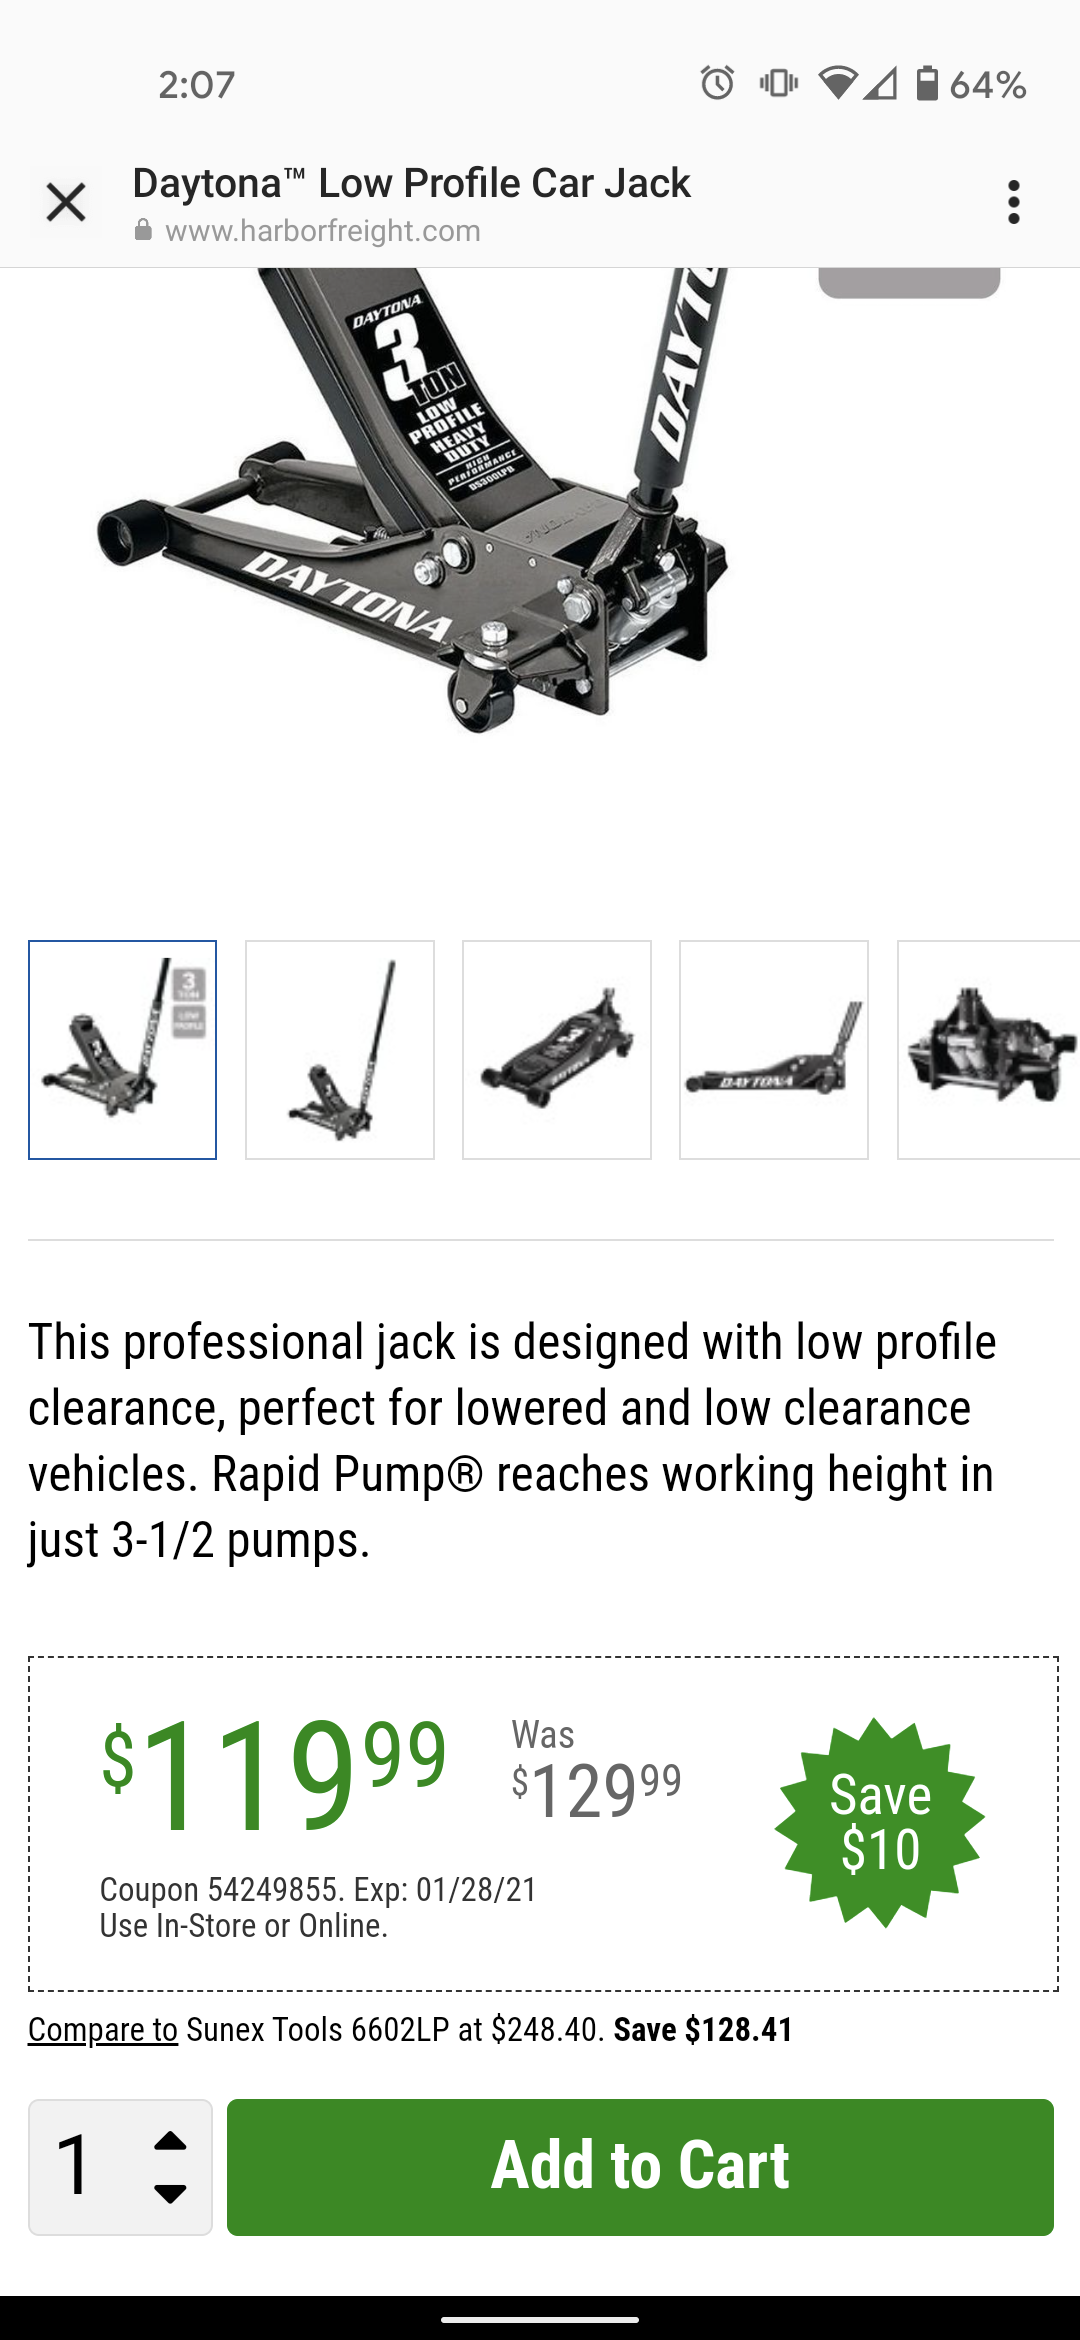 www.hfqpdb.com - DAYTONA 3 TON HEAVY DUTY PROFESSIONAL RAPID PUMP FLOOR JACK Lot No. 56642, 64200, 64779, 64783